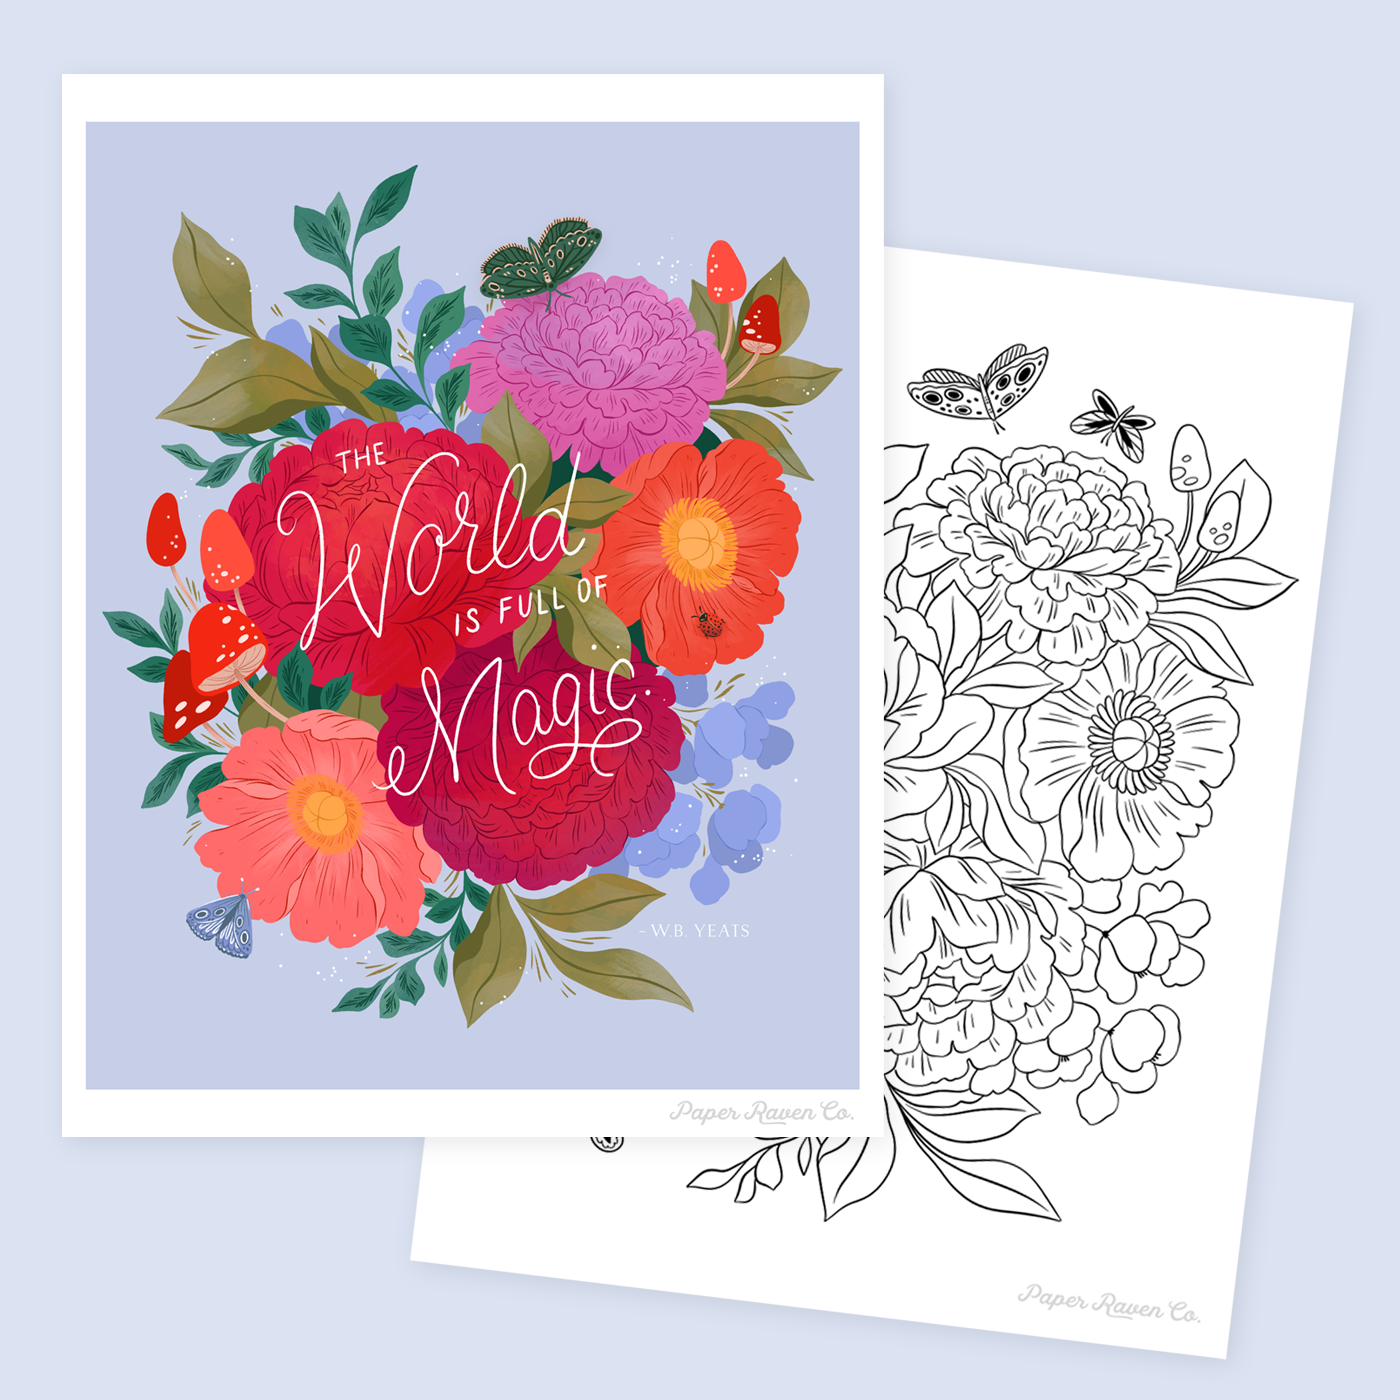 Earth Day 2020 Printables by Paper Raven Co.  #earthday2020 #climateactionnow #savetheplanet